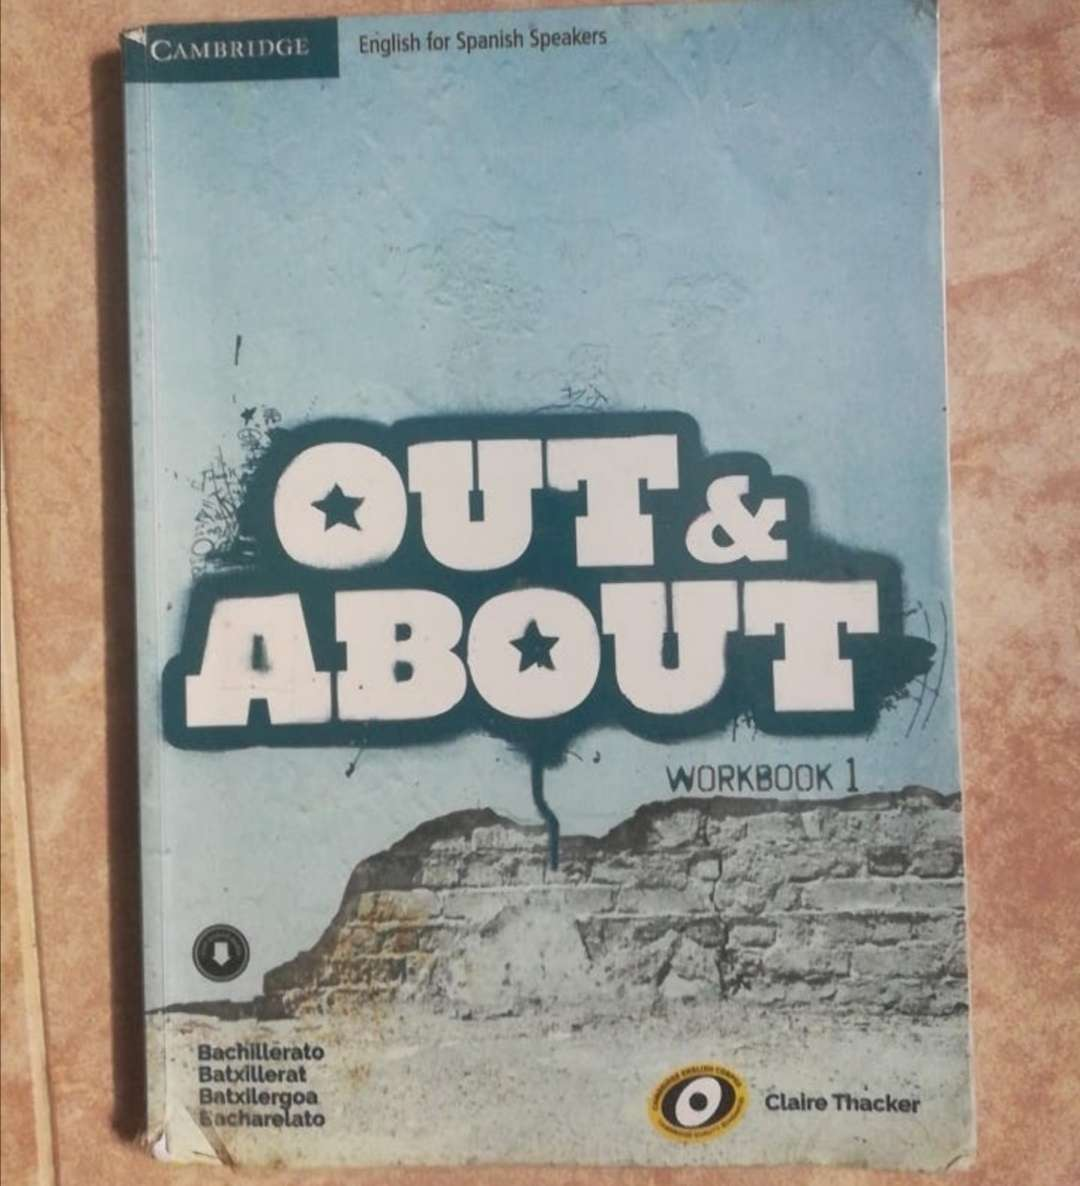 Imagen Out & about workbook 1°bach